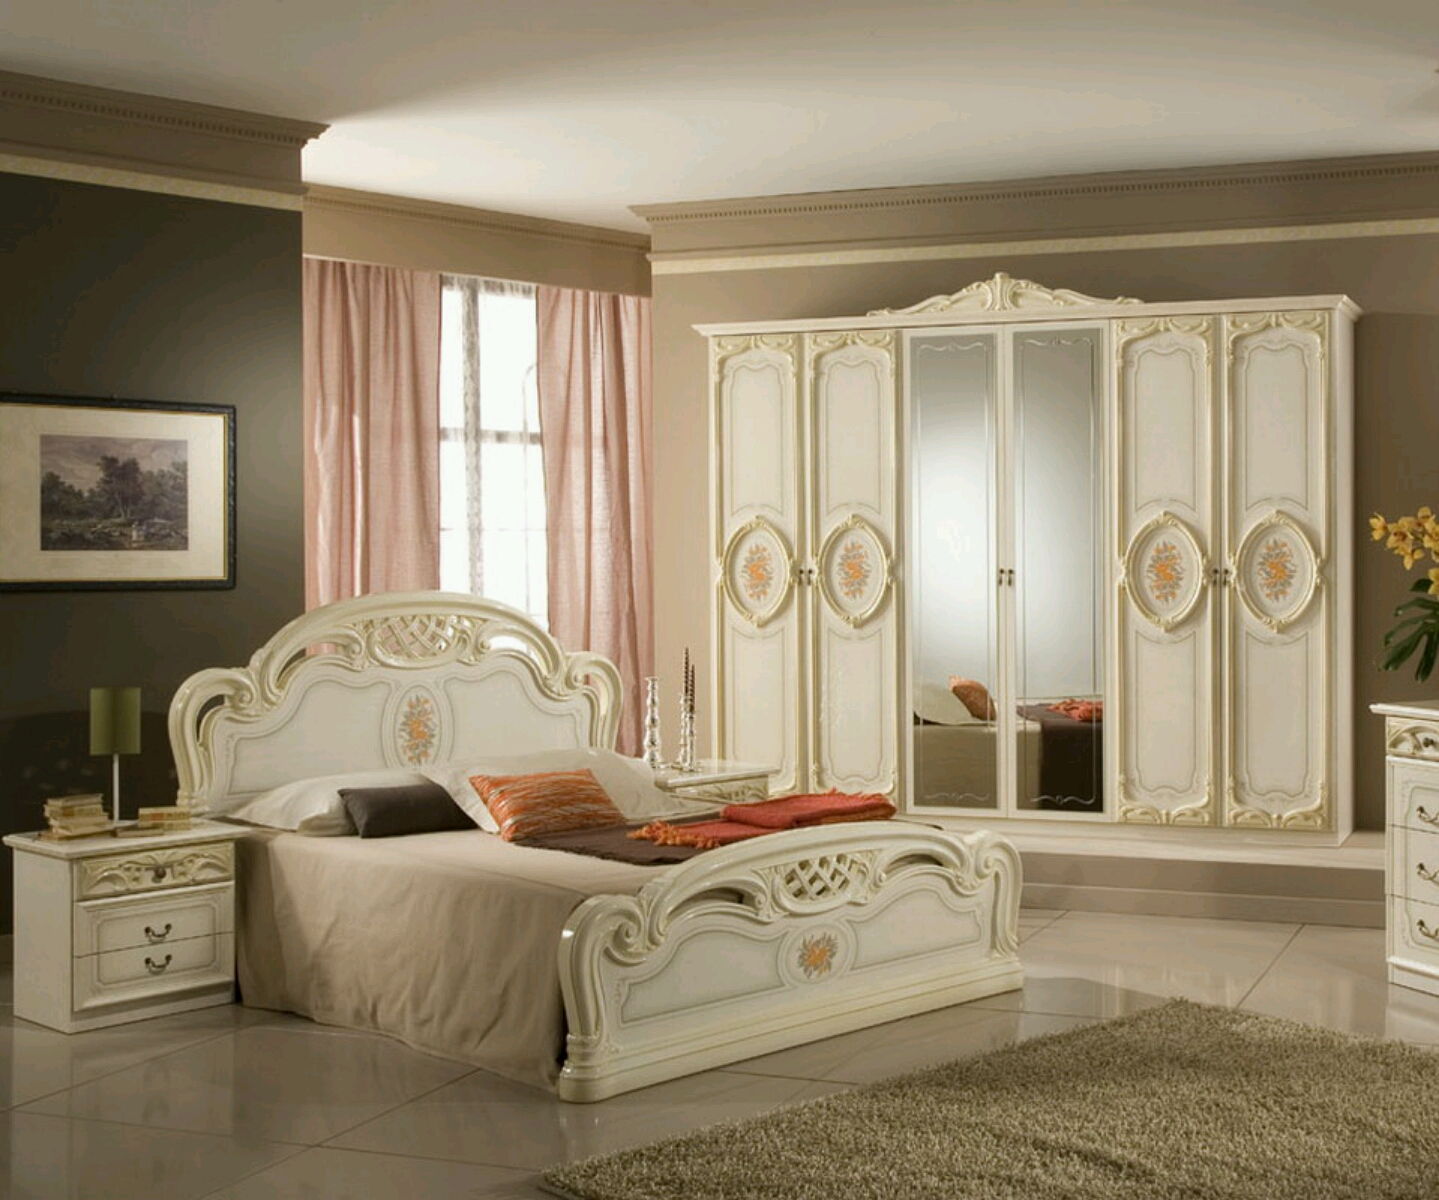 Modern luxury bedroom furniture designs ideas vintage for Bedroom furnishing designs